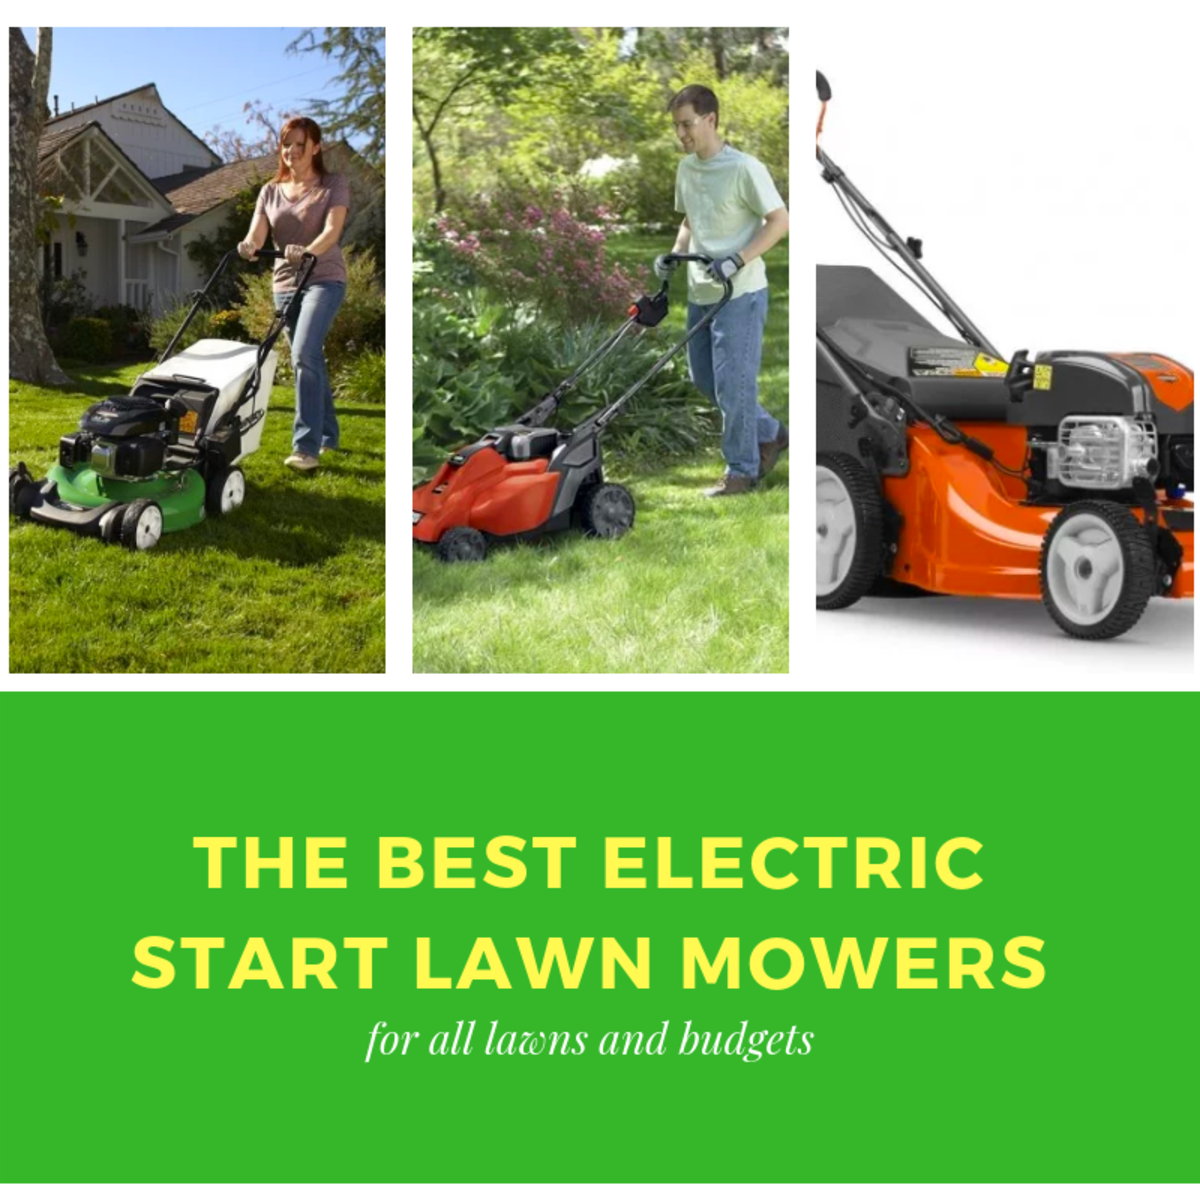 Electric Lawn Mower Sale Top 3 Best Electric Start Lawn Mowers 2019 Dengarden